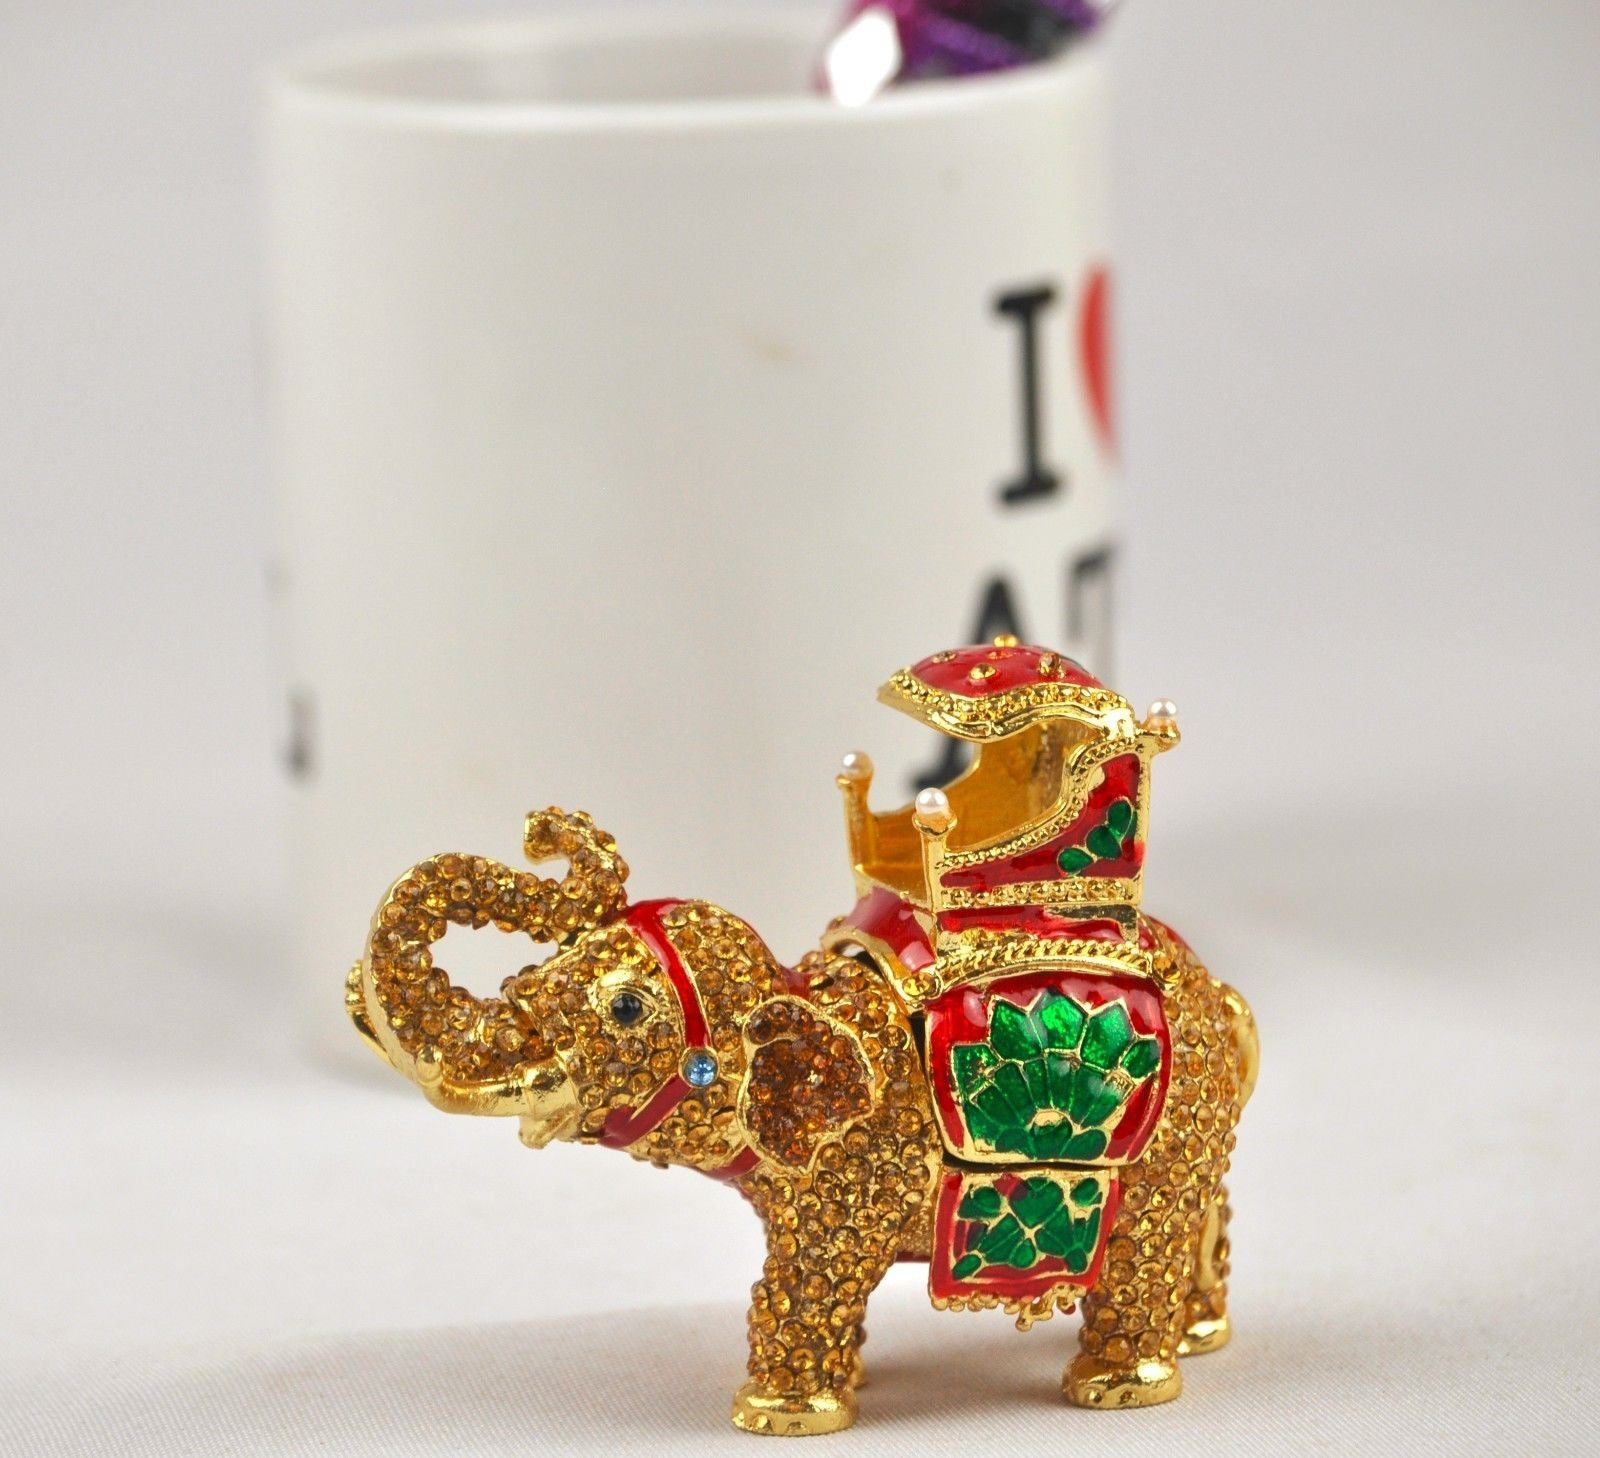 Decorative Small Elephant trinket box.